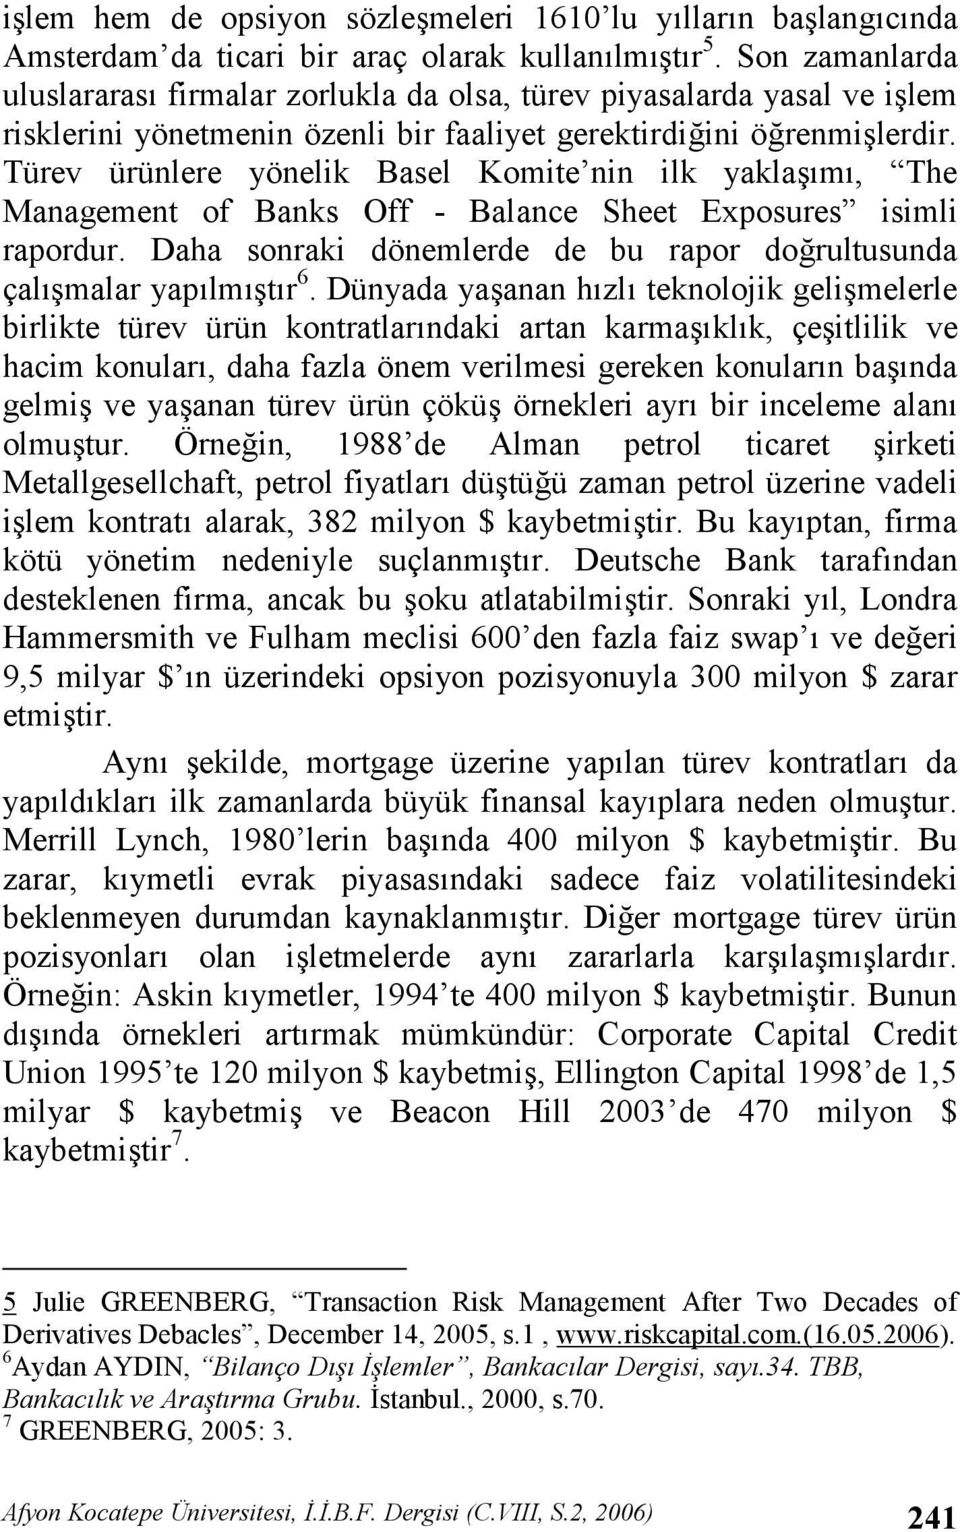 Türev ürünlere yönelik Basel Komite nin ilk yaklam, The Management of Banks Off - Balance Sheet Exposures isimli rapordur. Daha sonraki dönemlerde de bu rapor dorultusunda çalmalar yaplmtr 6.